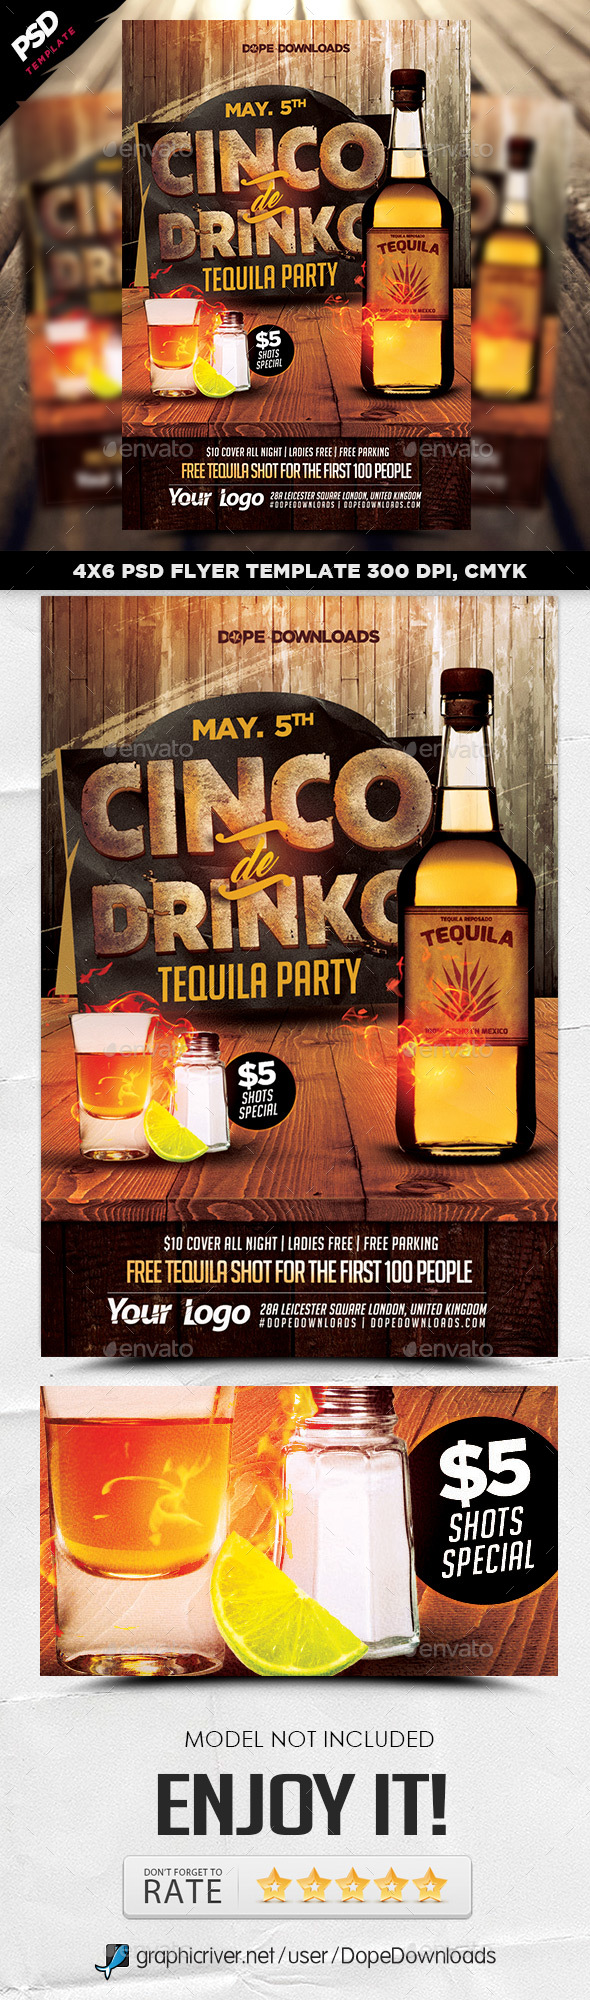 Cinco De Drinko Tequila Party Flyer Template - Events Flyers